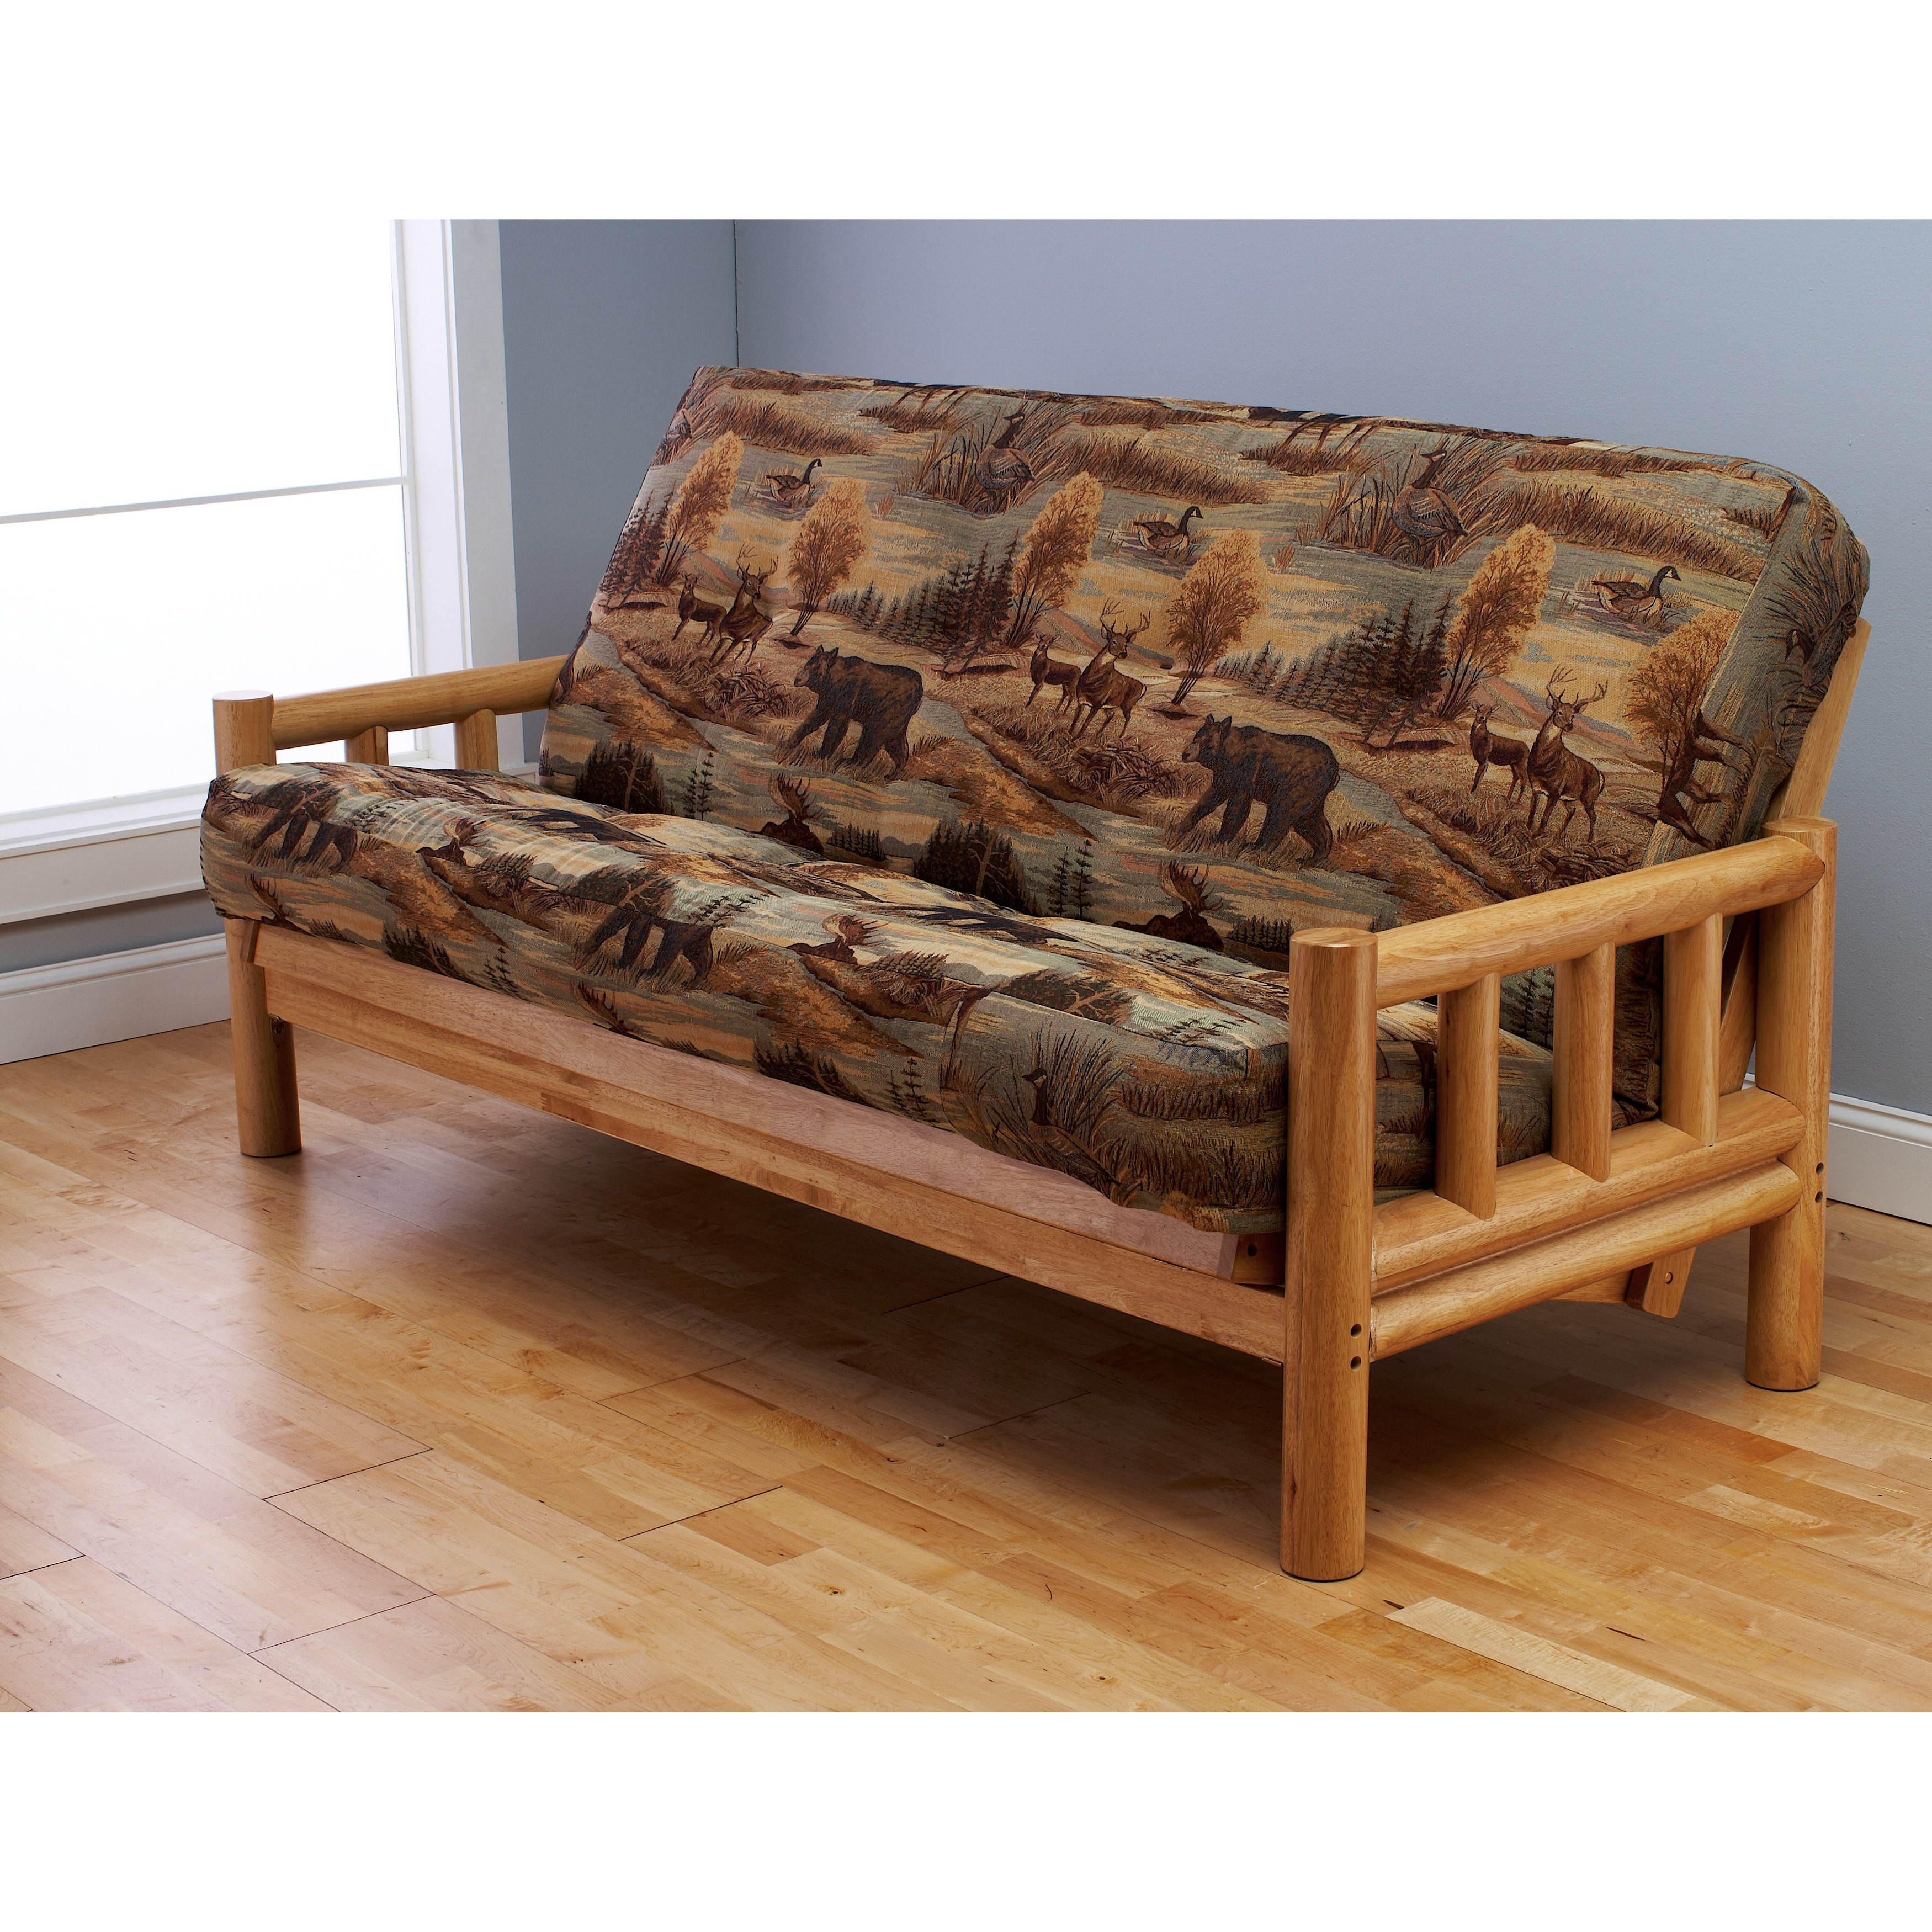 Somette Outdoor Lodge Full Size Futon Cover Free Shipping Today Com 8105380